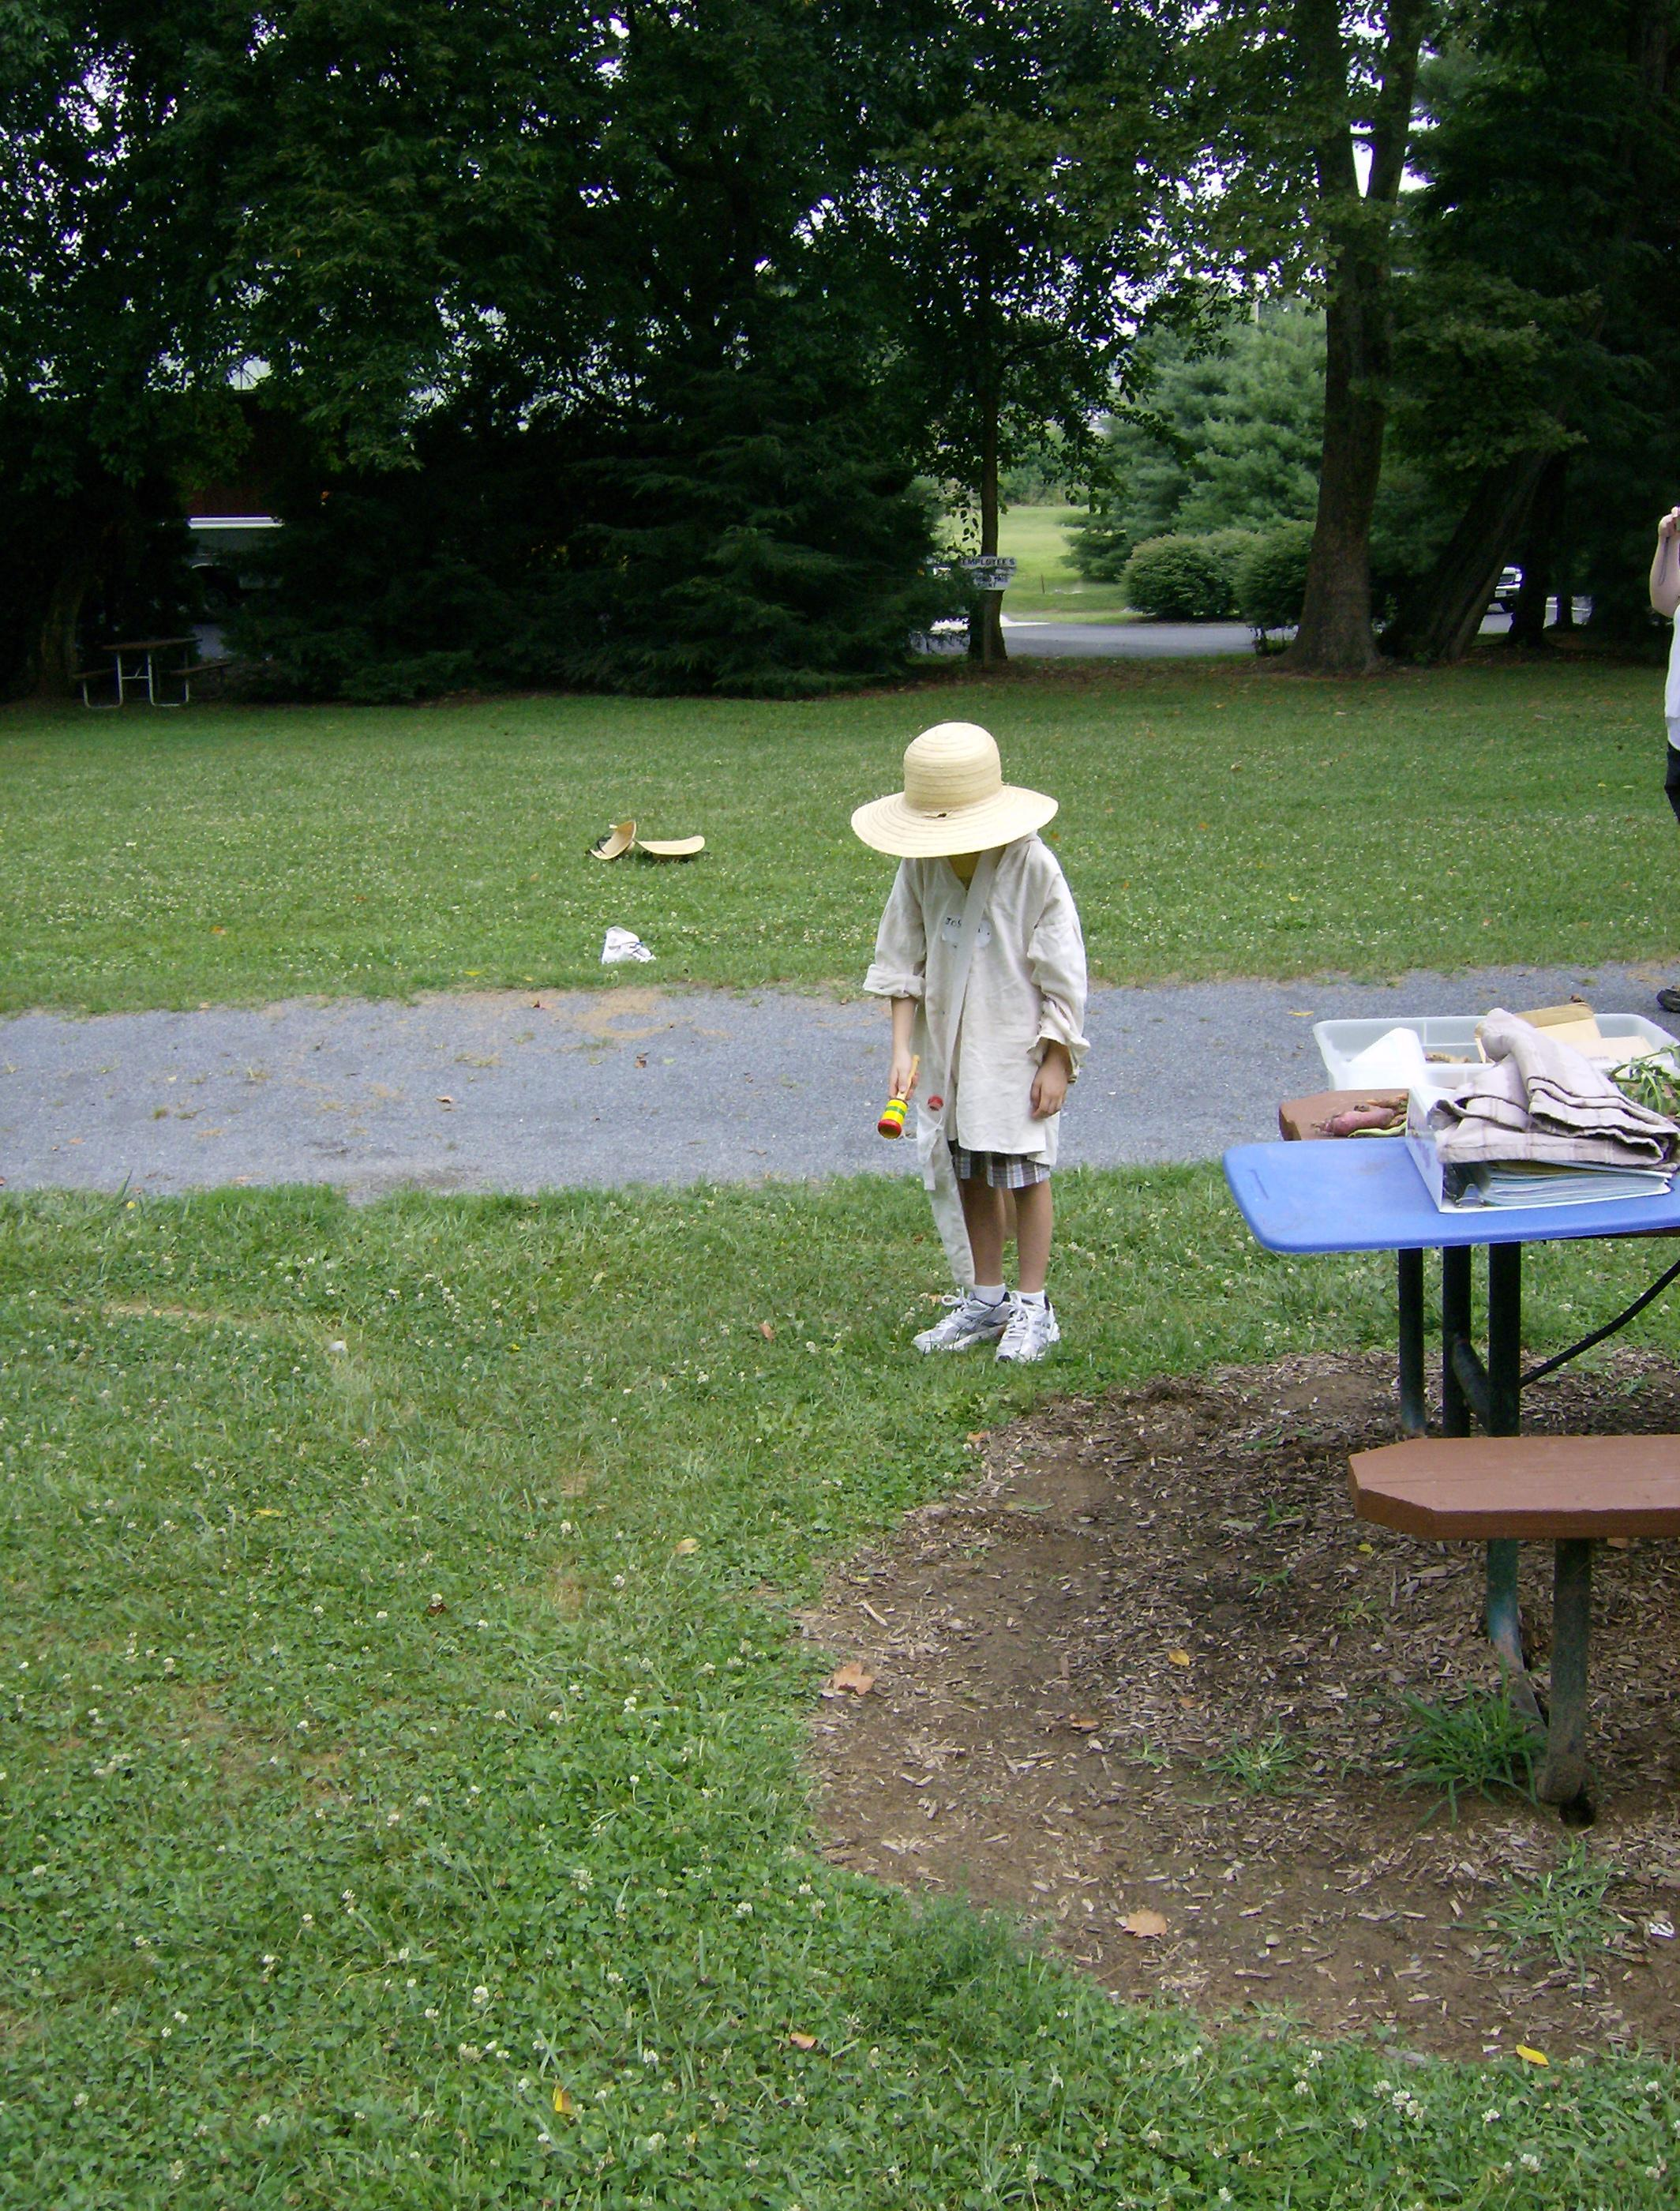 Child standing next to picnic table